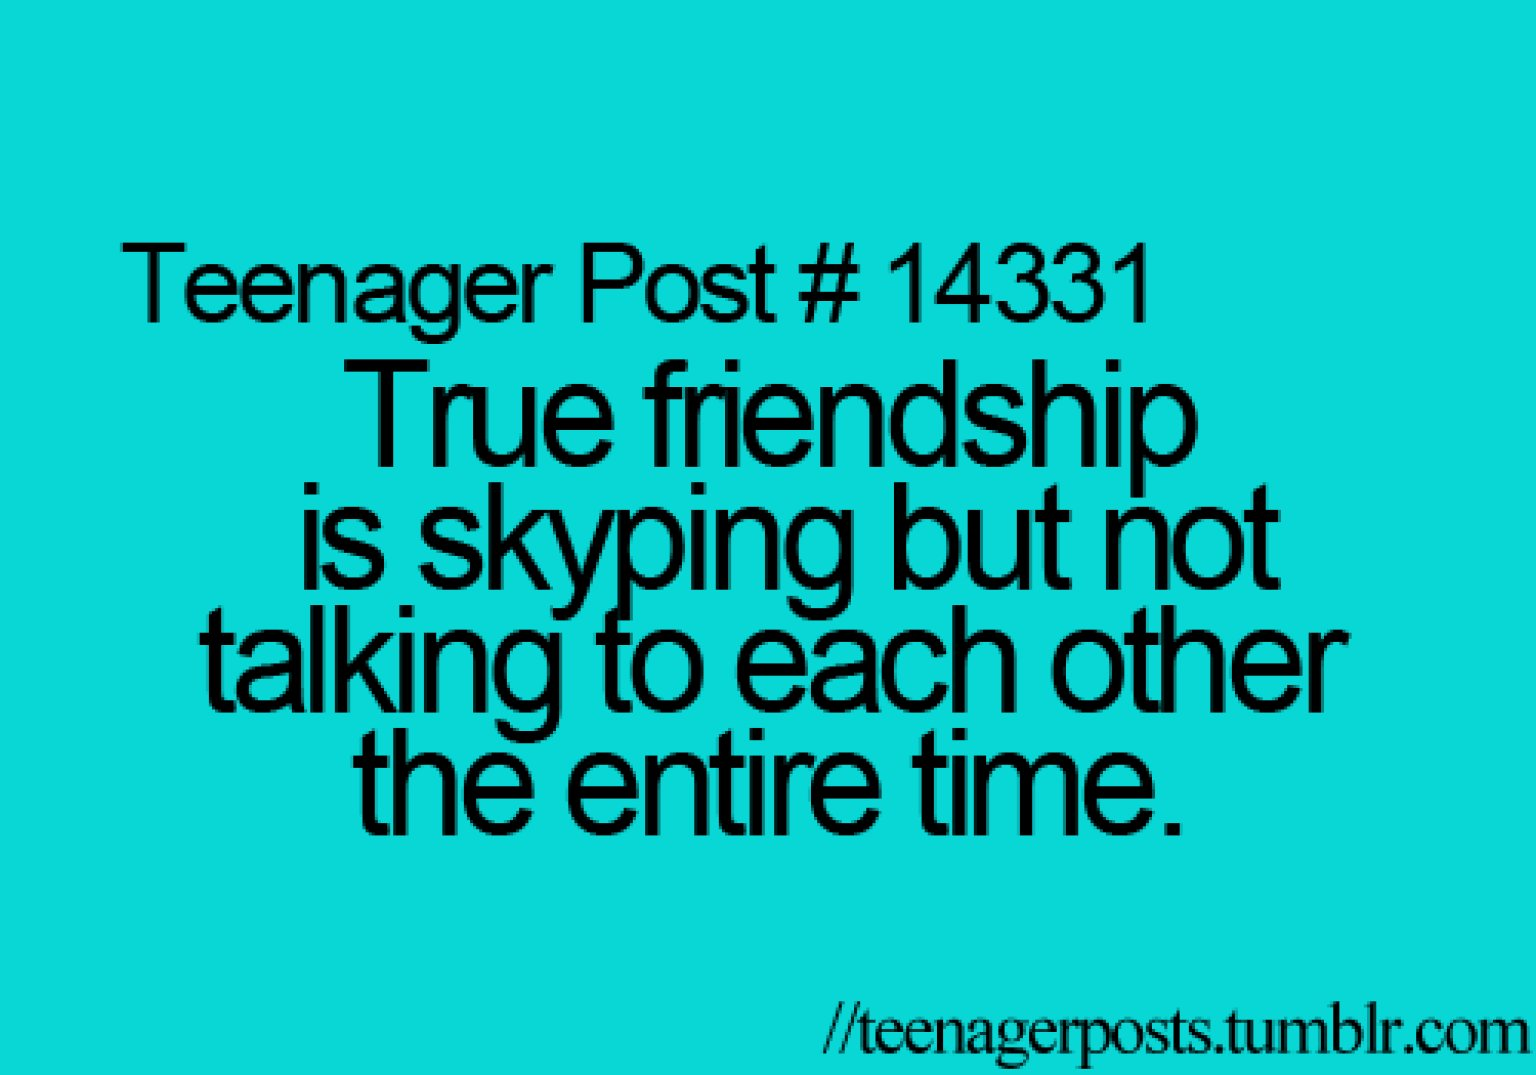 Teenage Quotes About Love And Friendship : Teenager Post Quotes About Friends. QuotesGram